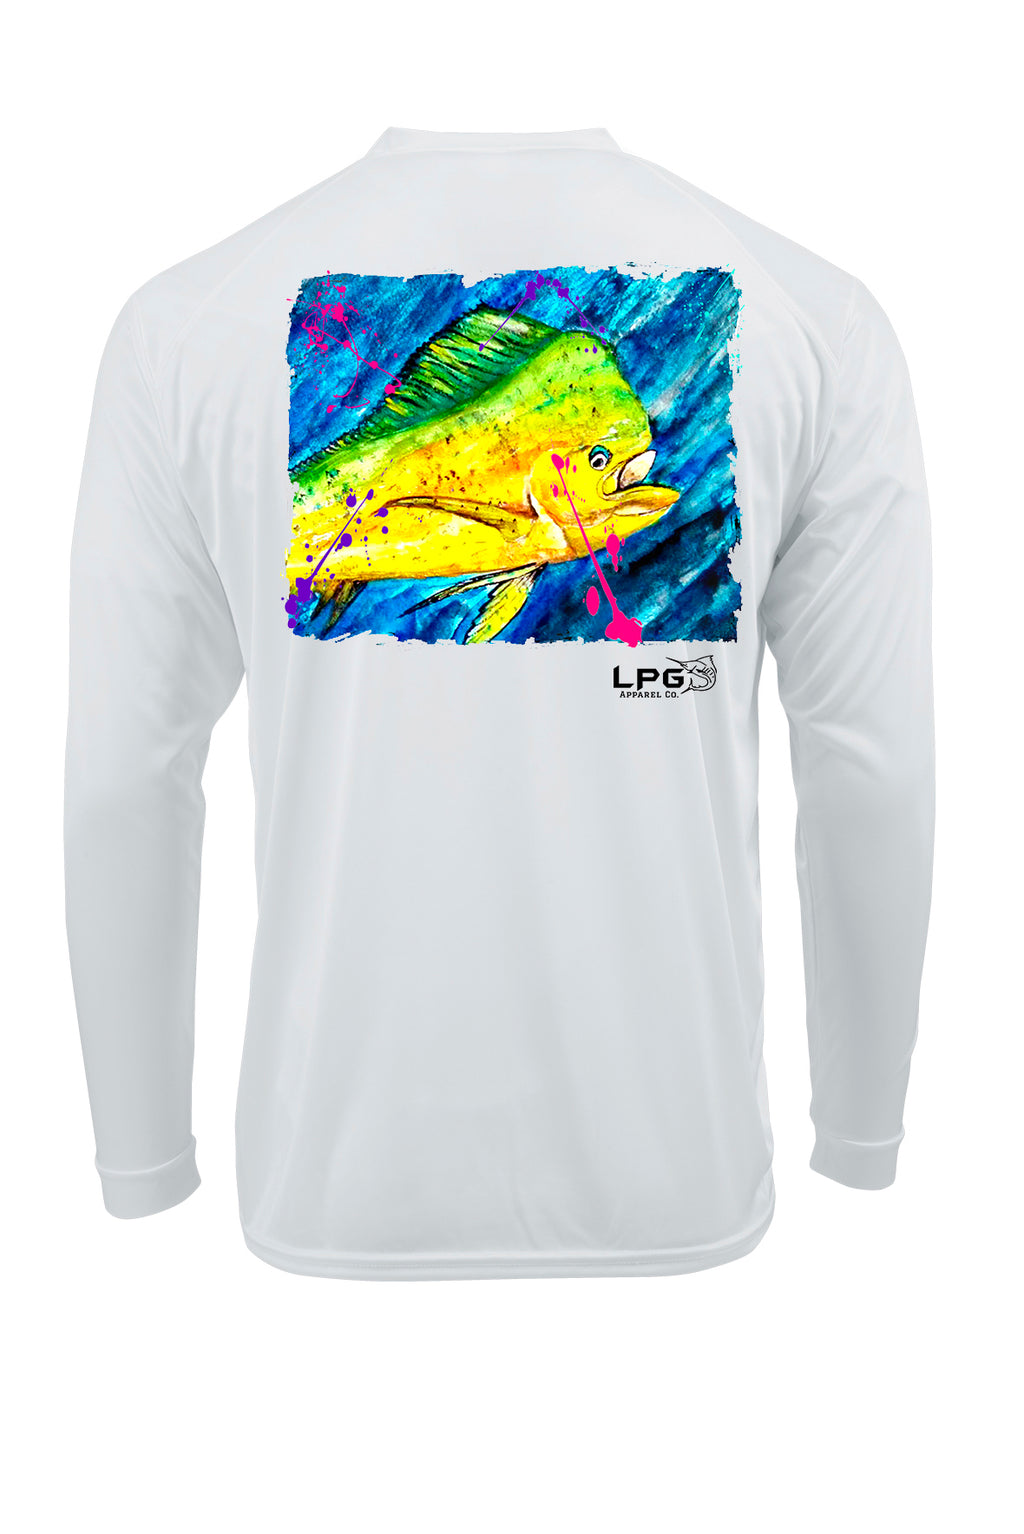 Lobo Lures LPG Electric Mahi Vibe Performance UPF 50+ T-shirt